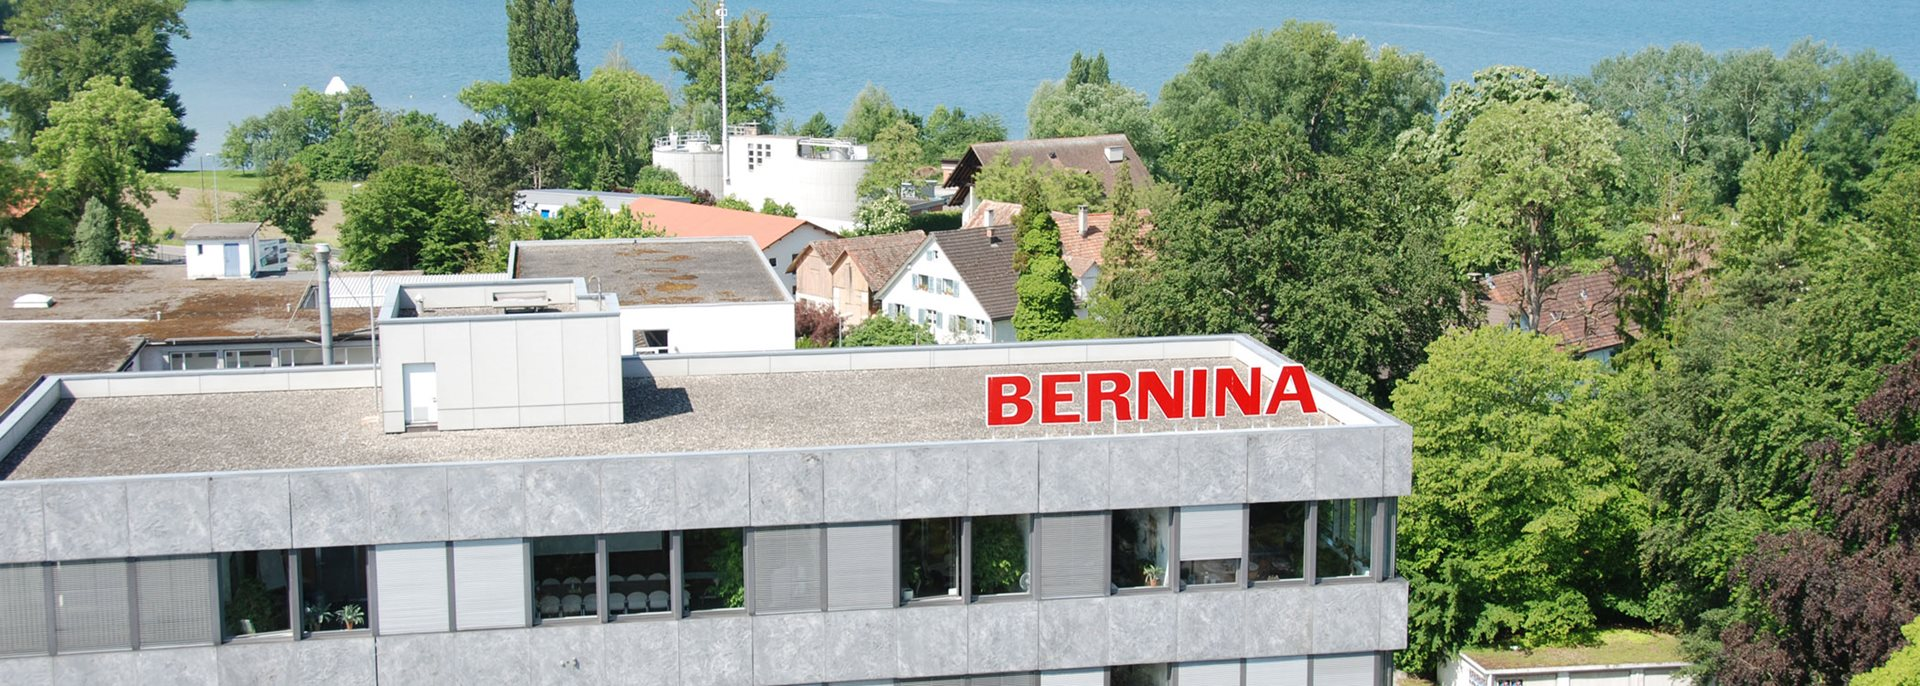 BERNINA Free Download